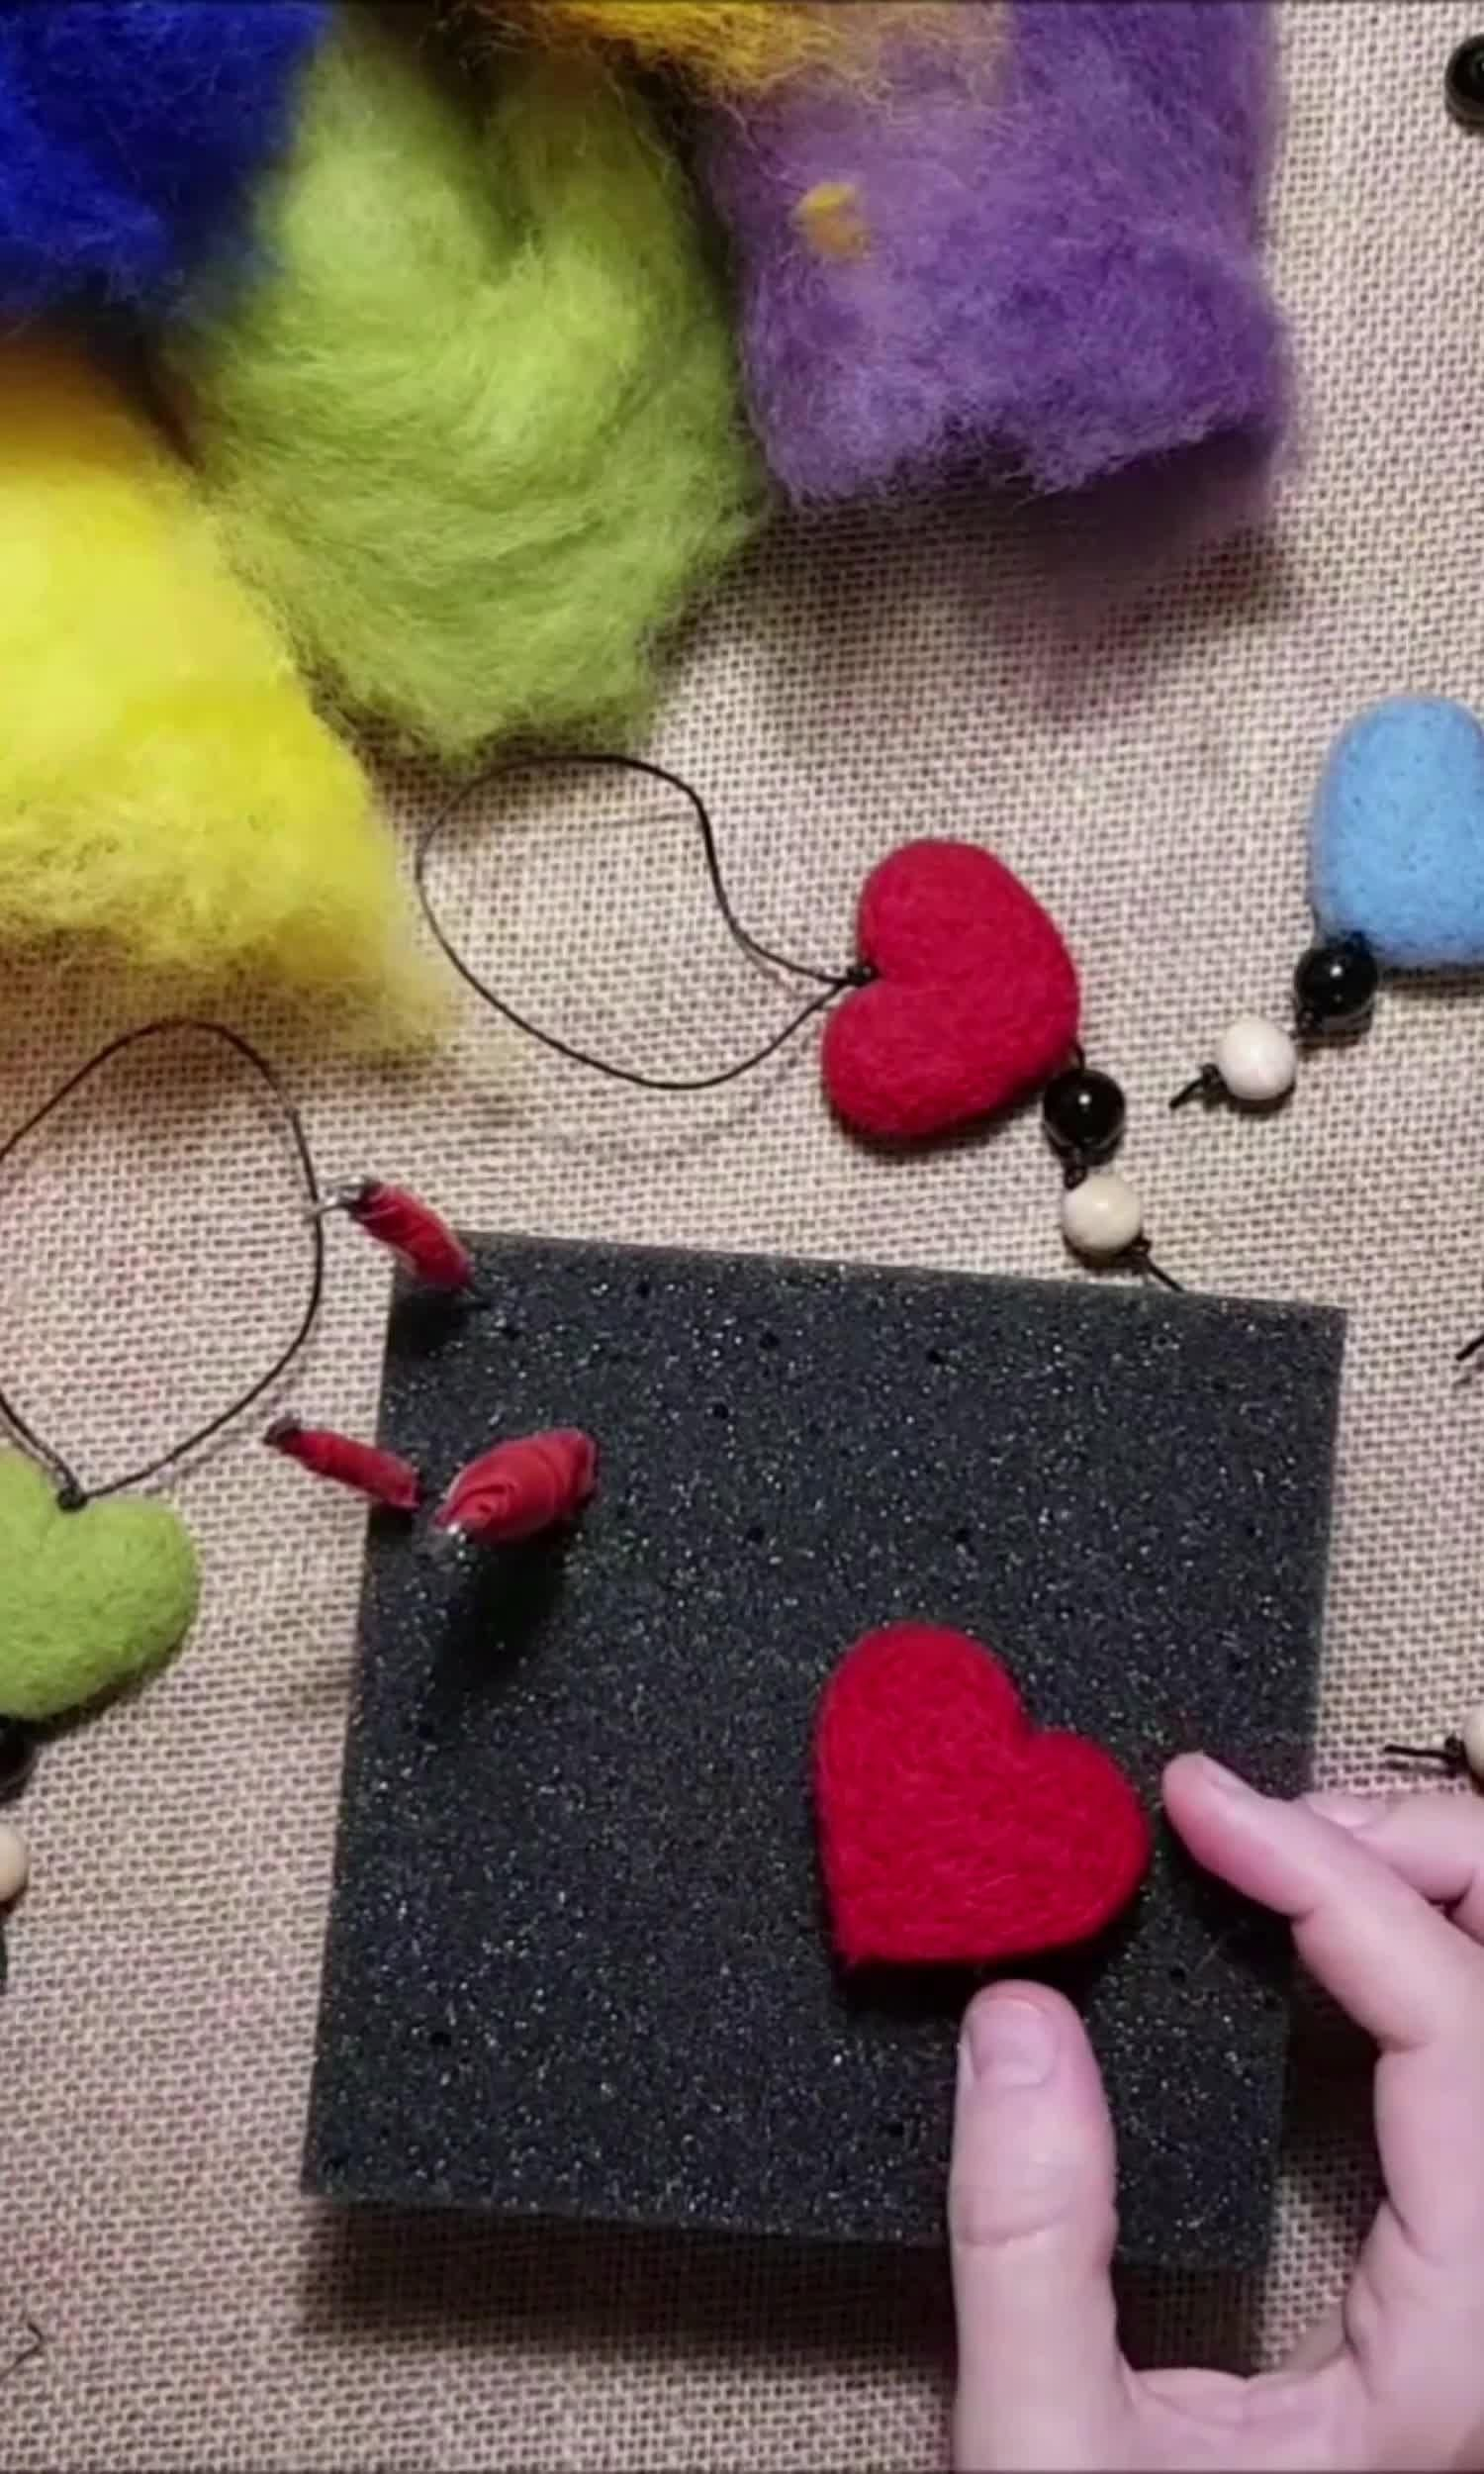 How to make needle felted hearts?